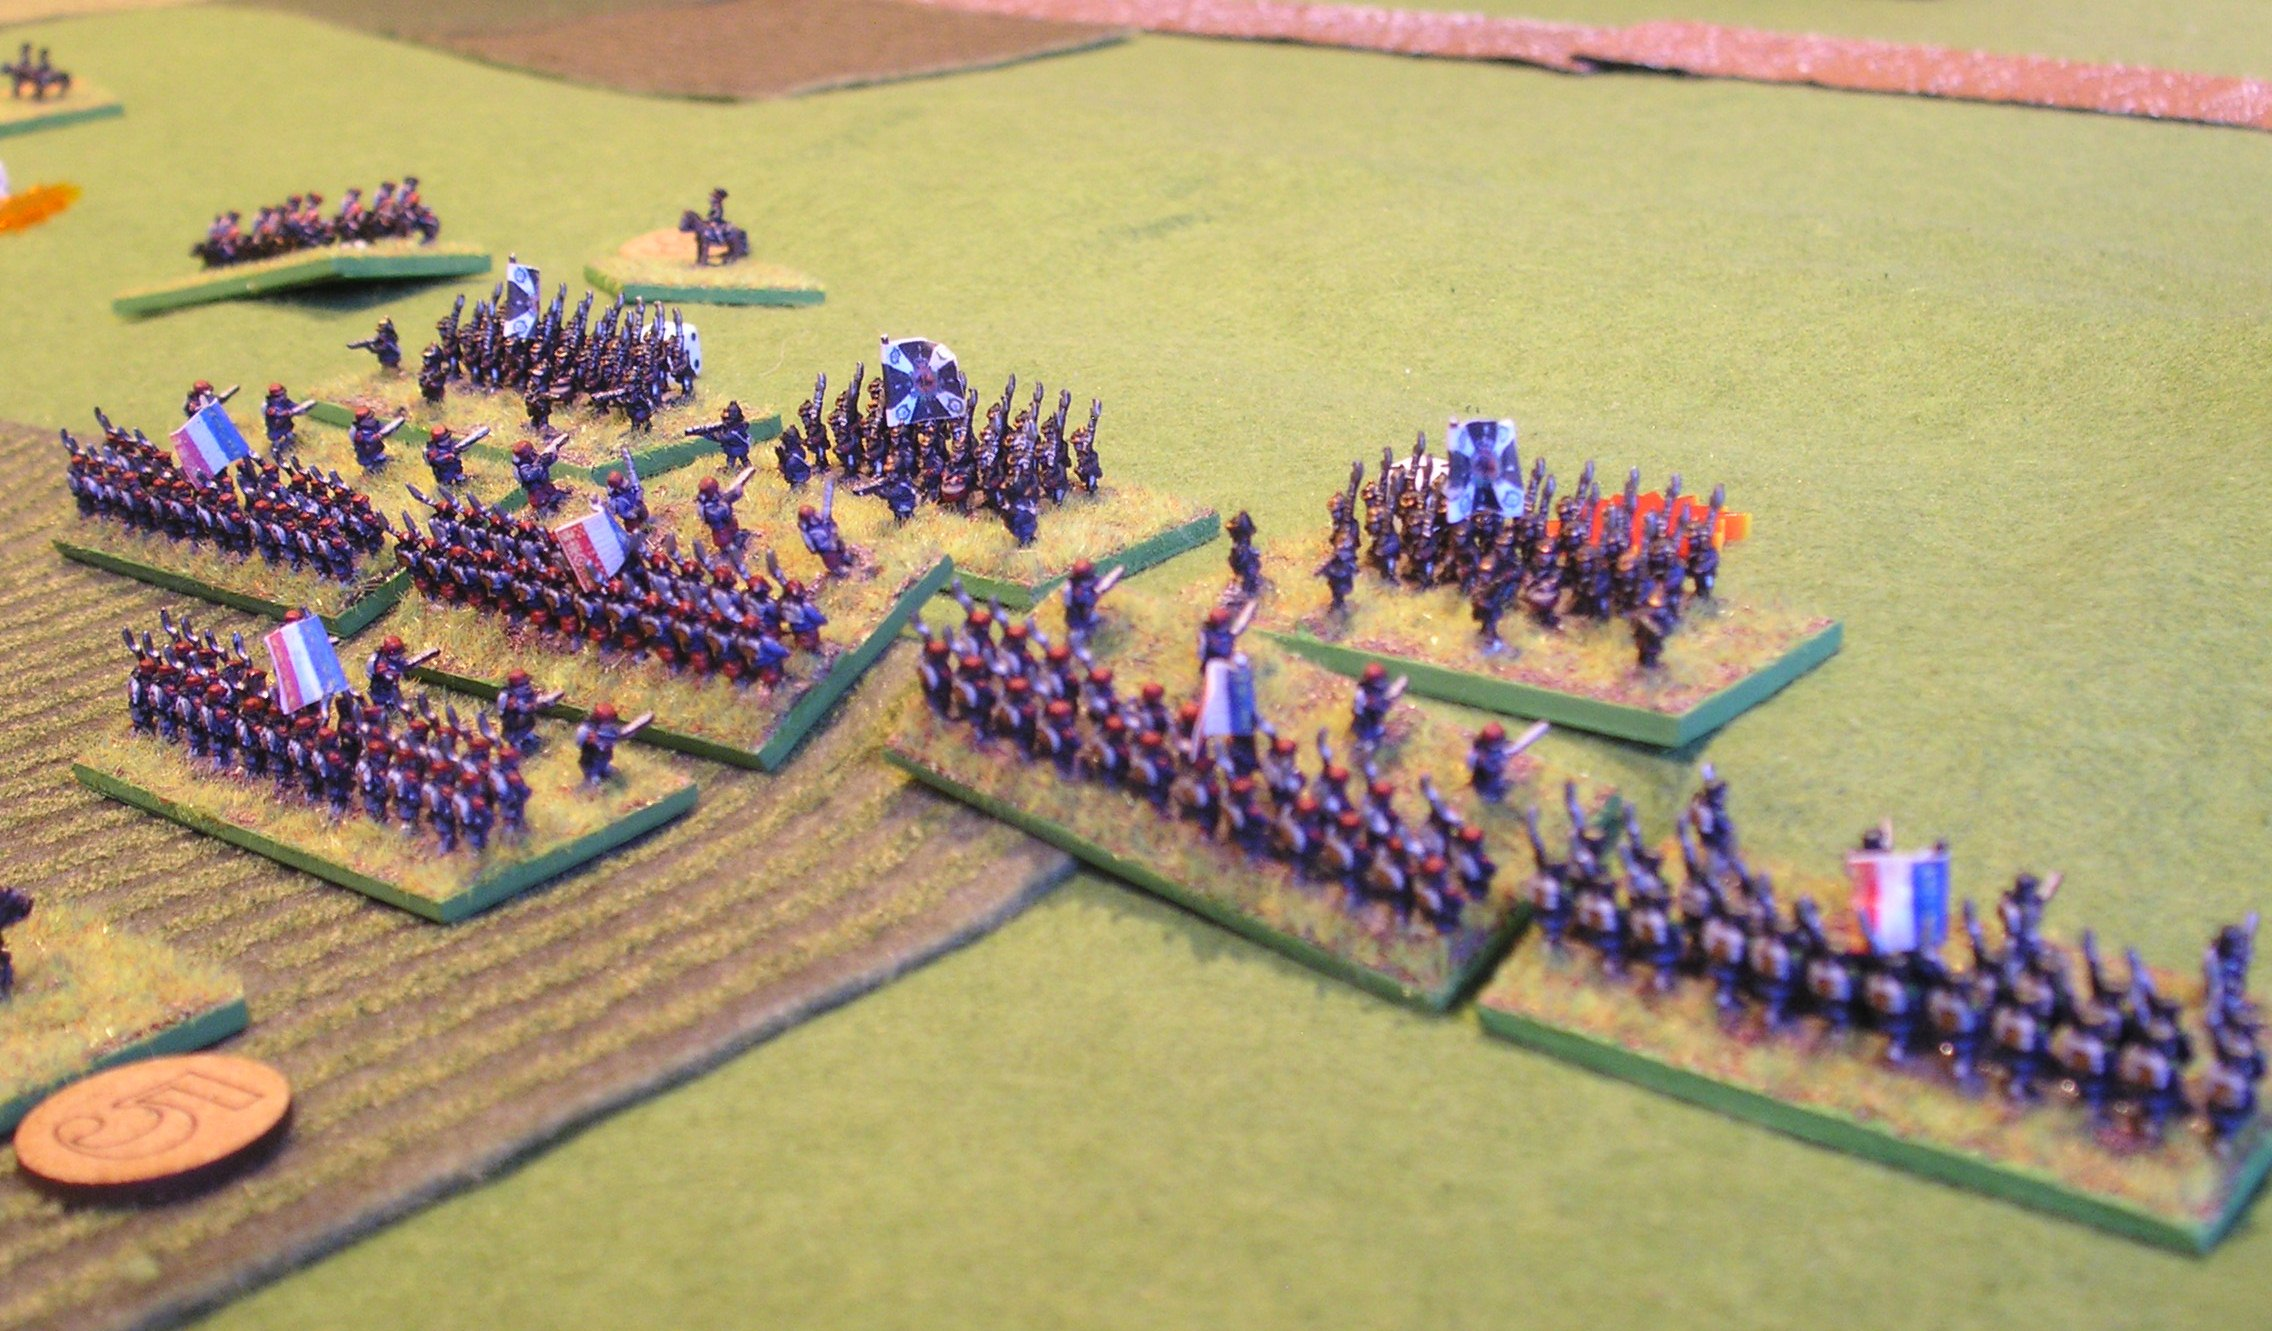 Hitting the prussian left (note the cavalry in the background)